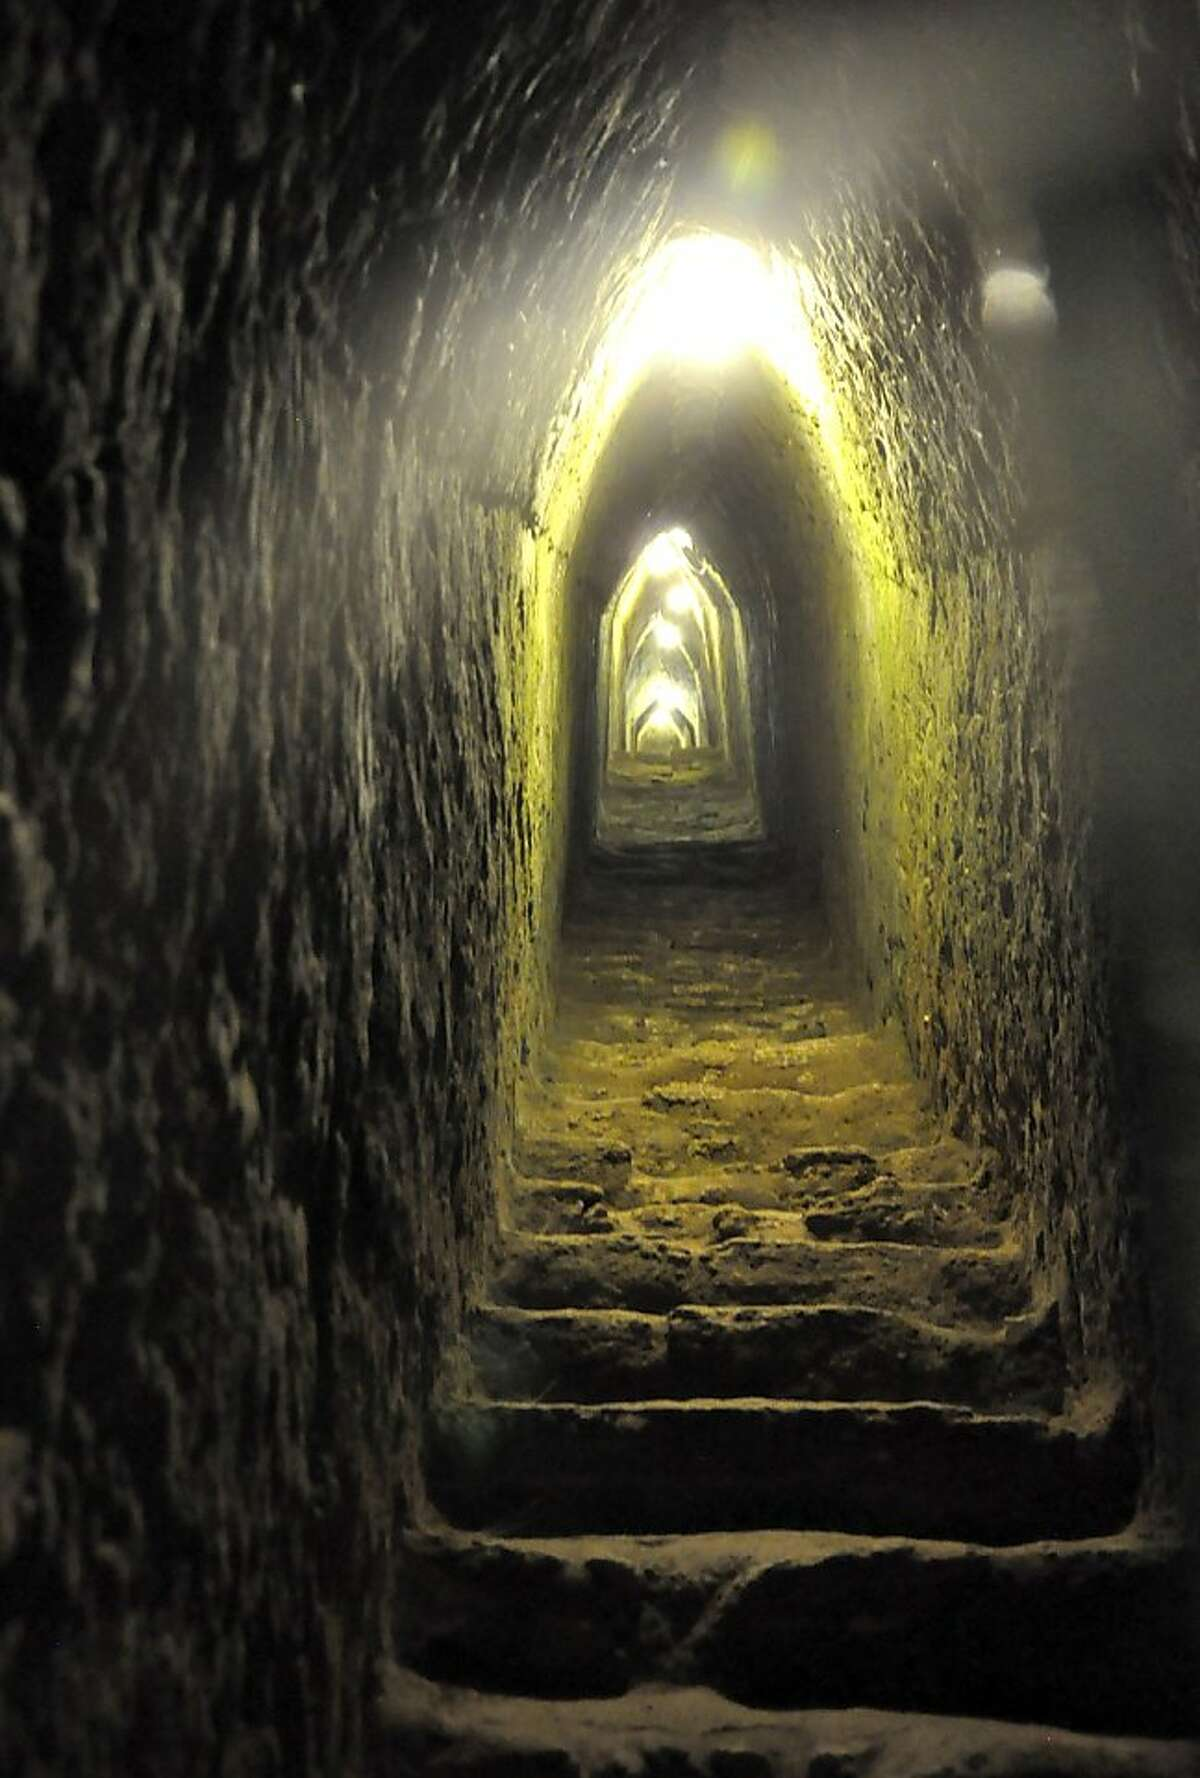 The Cholula Pyramid tunnel walk is a very different experience than climbing over Maya pyramids, which usually don't allow visitors into the chambers deep inside.